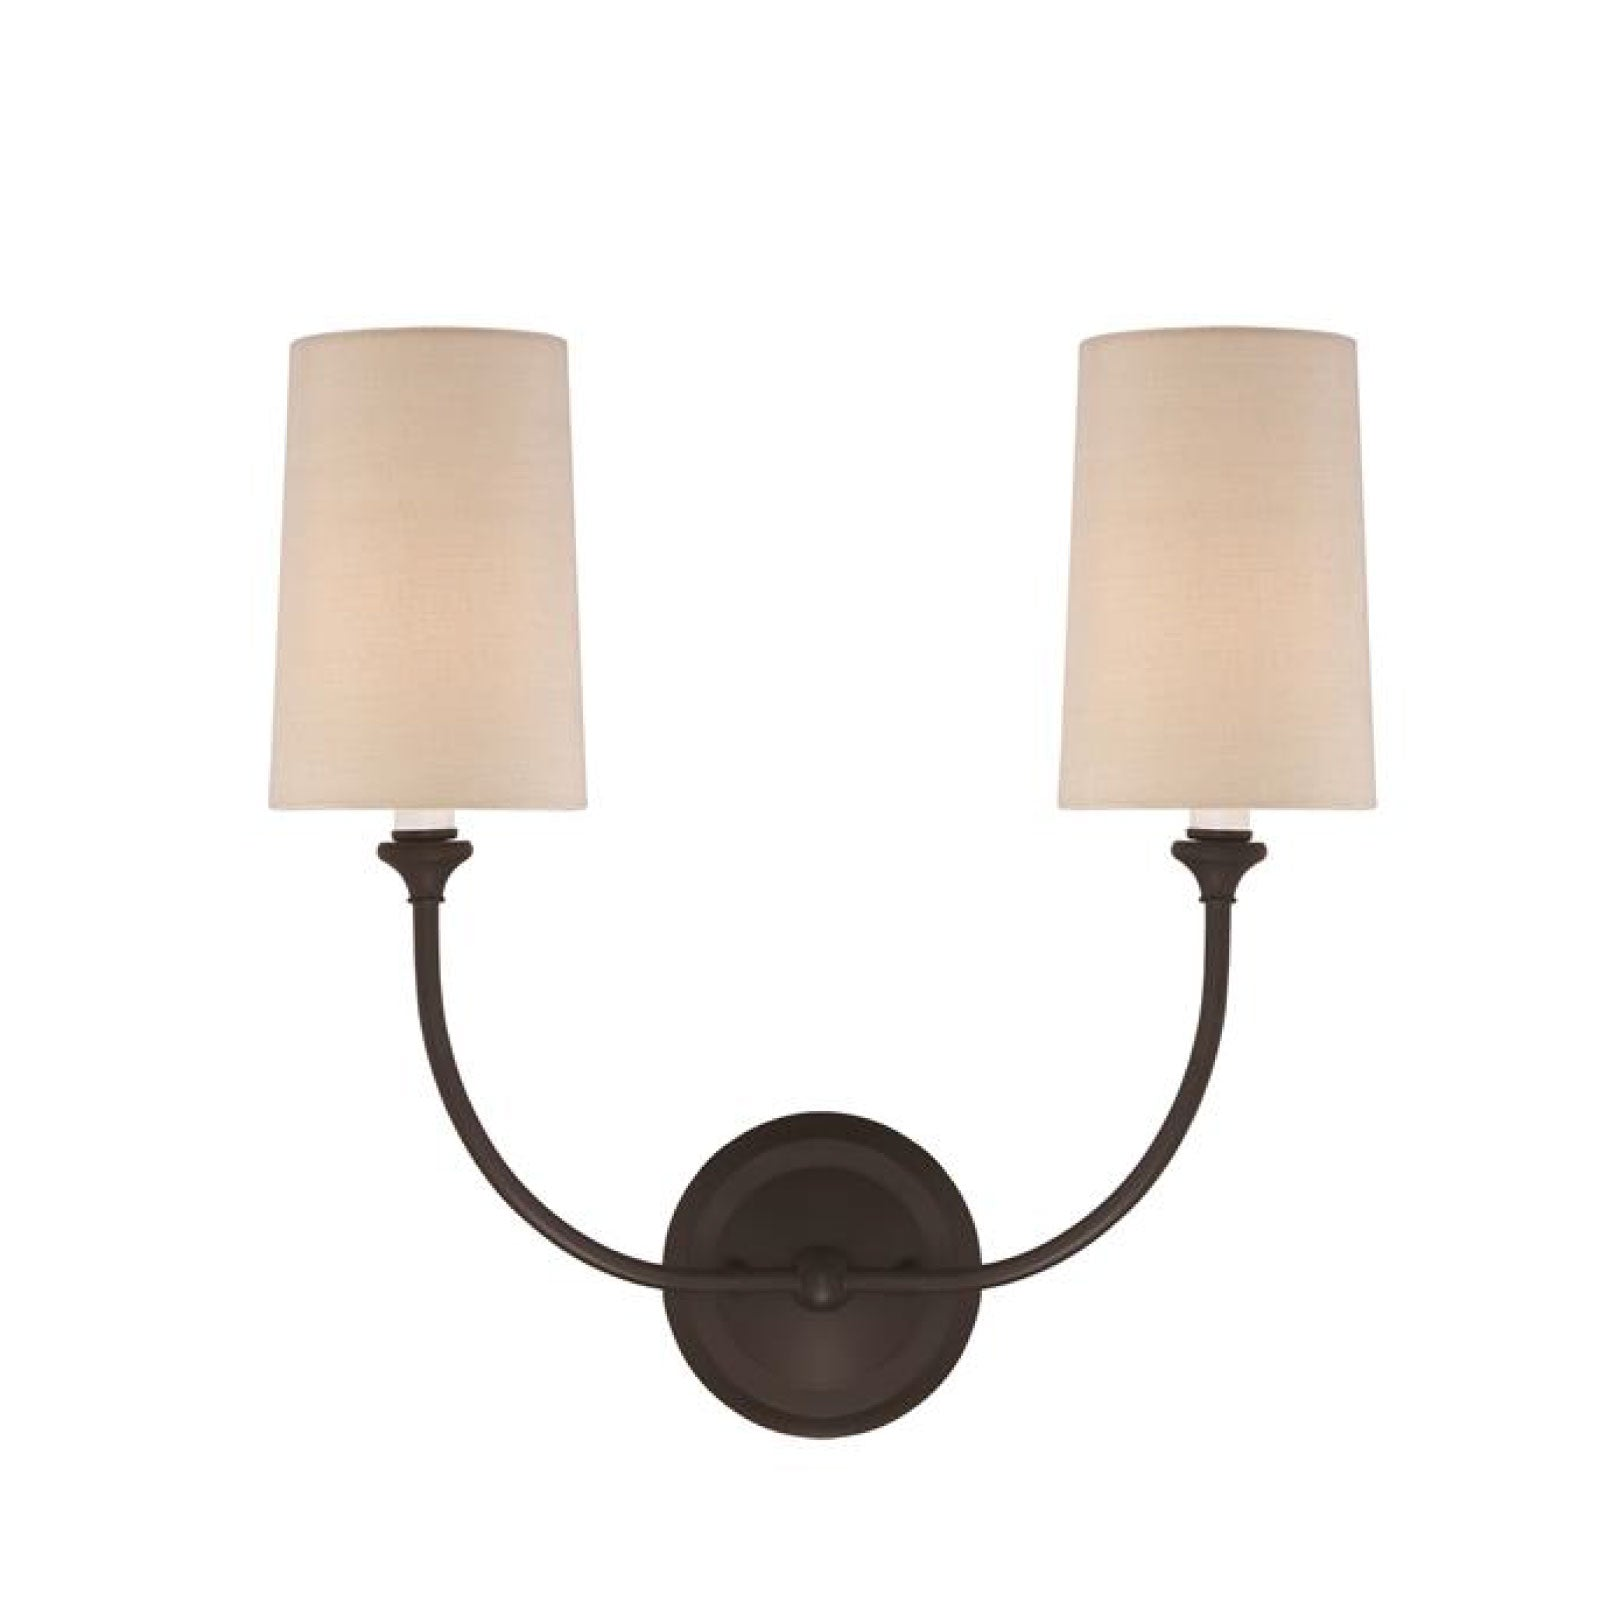 Abrams Double Sconce in Bronze